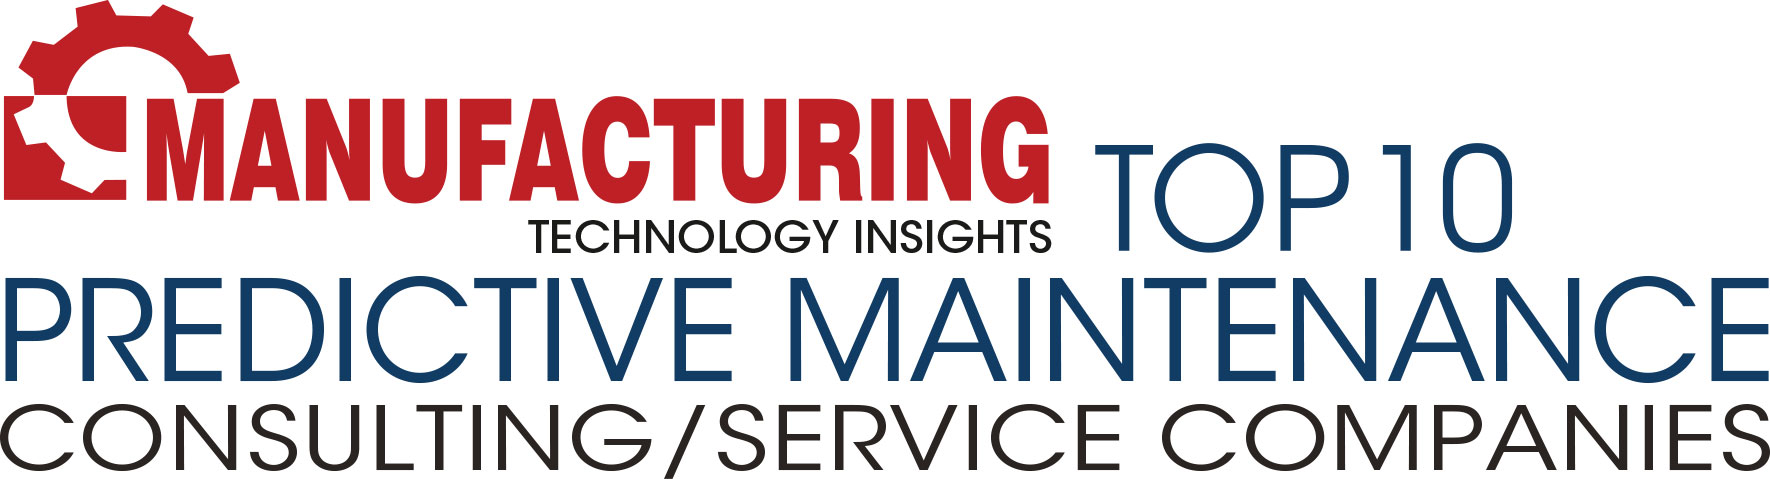 Top 10 Predictive Maintenance Consulting/Service Companies - 2019